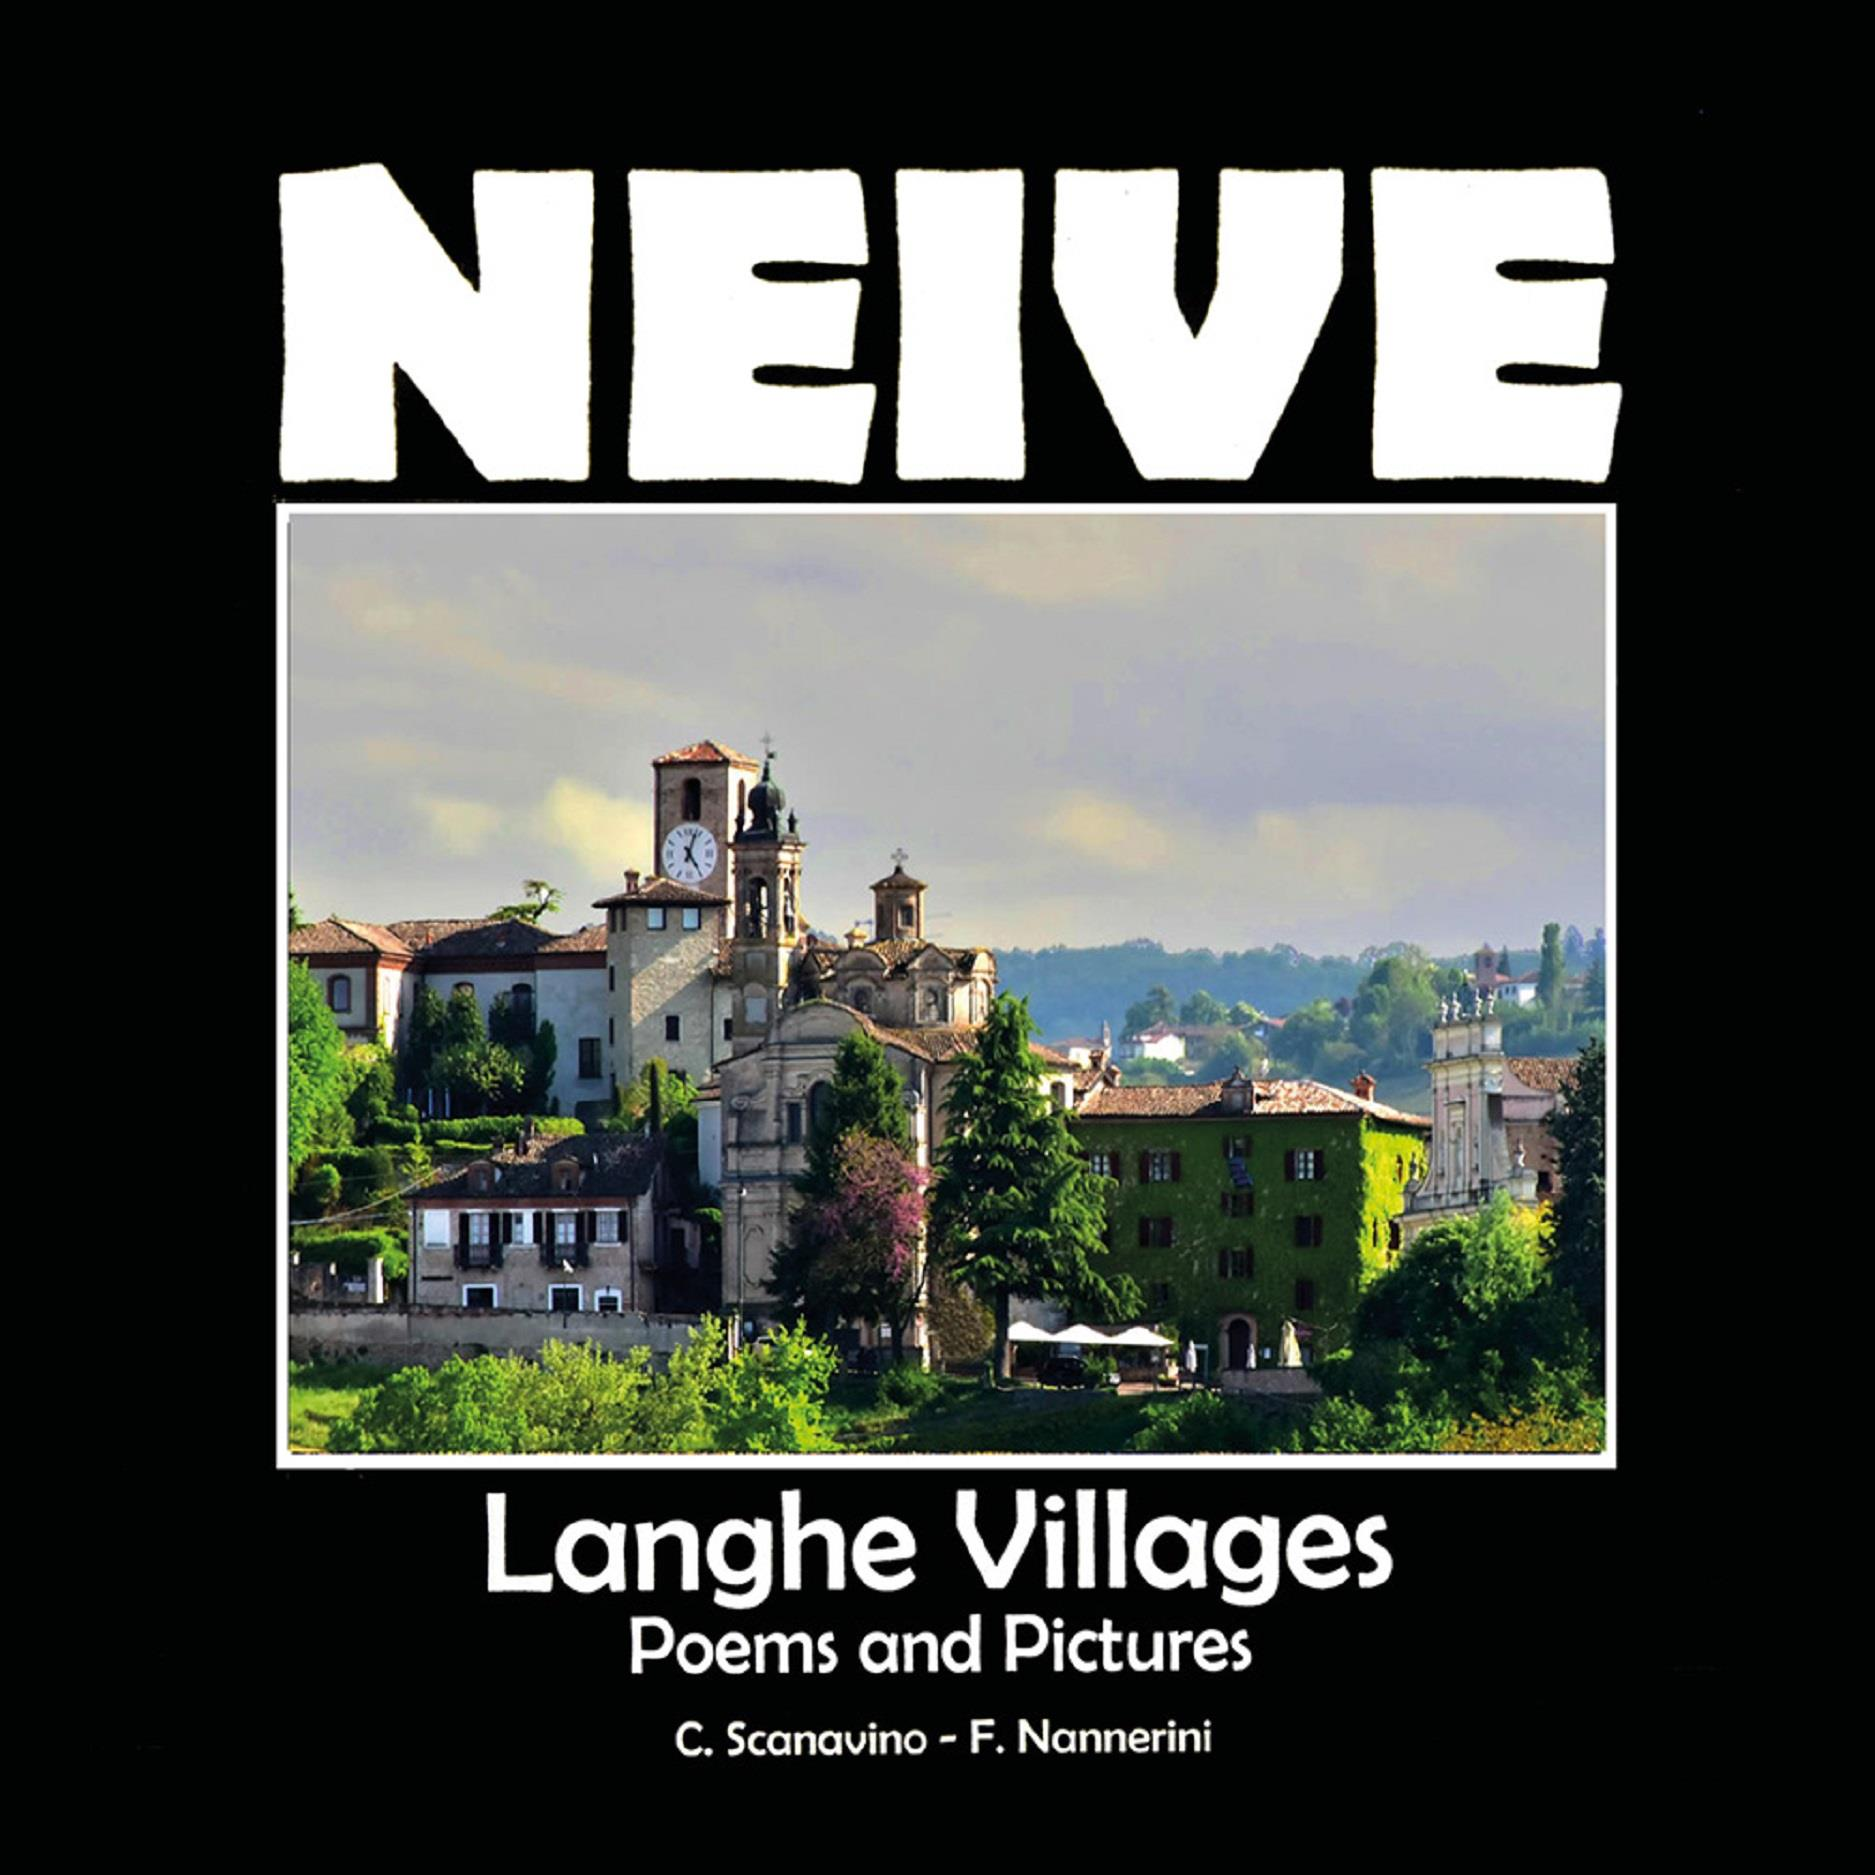 Neive - A cosy village in the Langhe